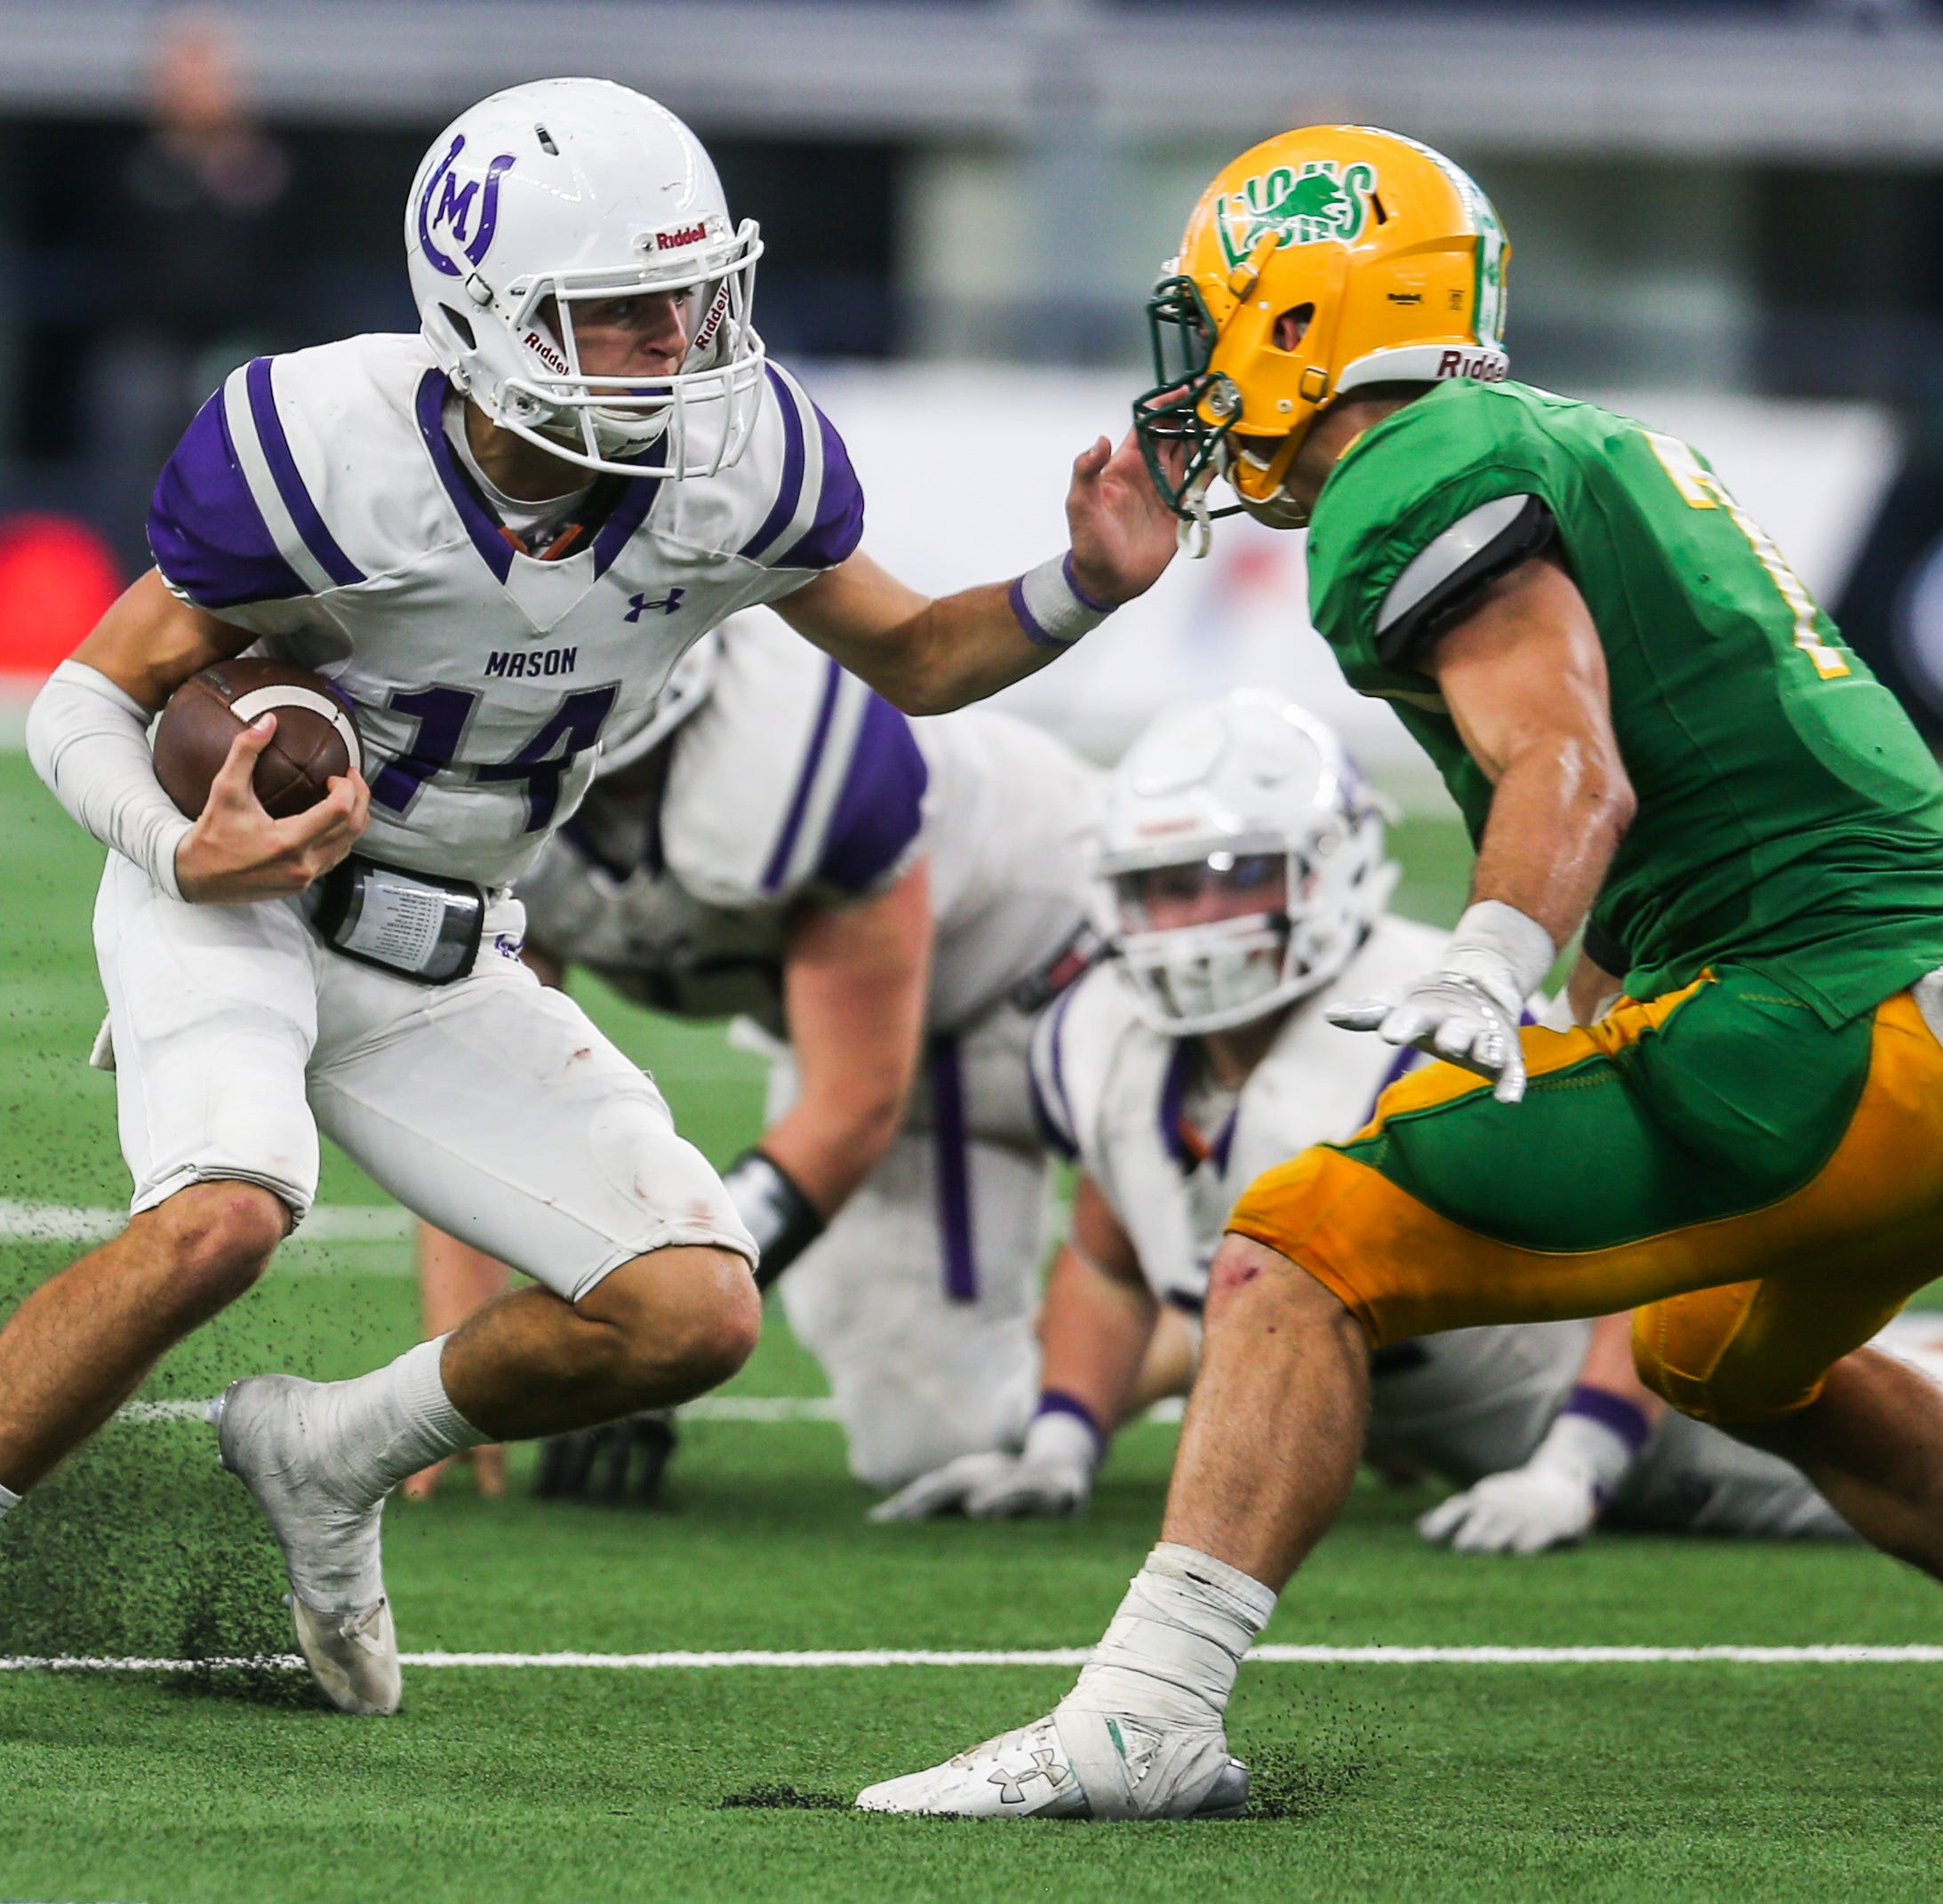 Mason quarterback Otto Wofford selects national champ Mary Hardin-Baylor